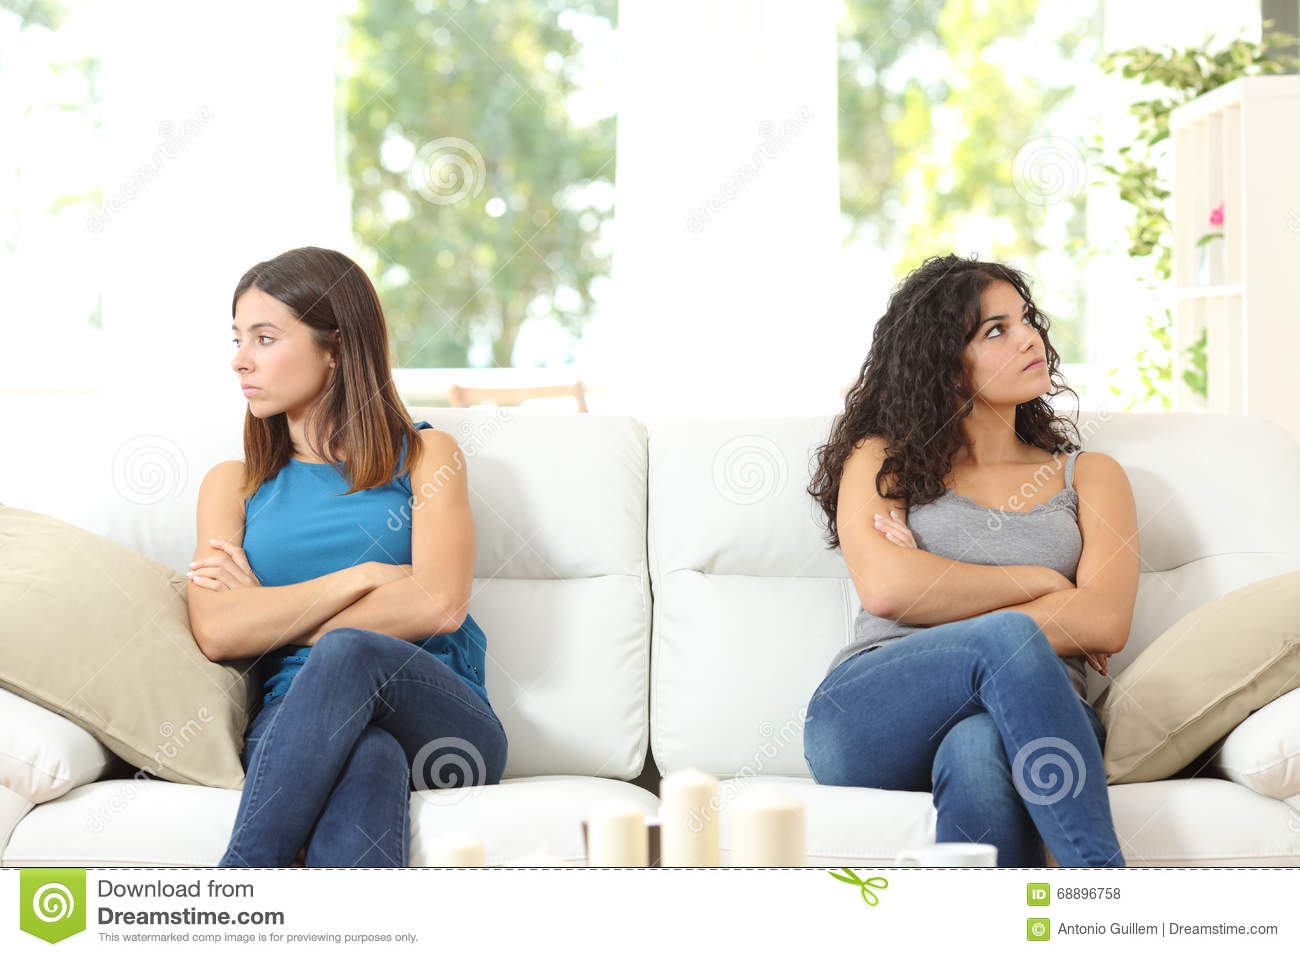 Two Friends Angry After Quarrel Stock Photo Image 68896758 : two friends angry quarrel sitting couch looking other side 68896758 from dreamstime.com size 1300 x 957 jpeg 106kB